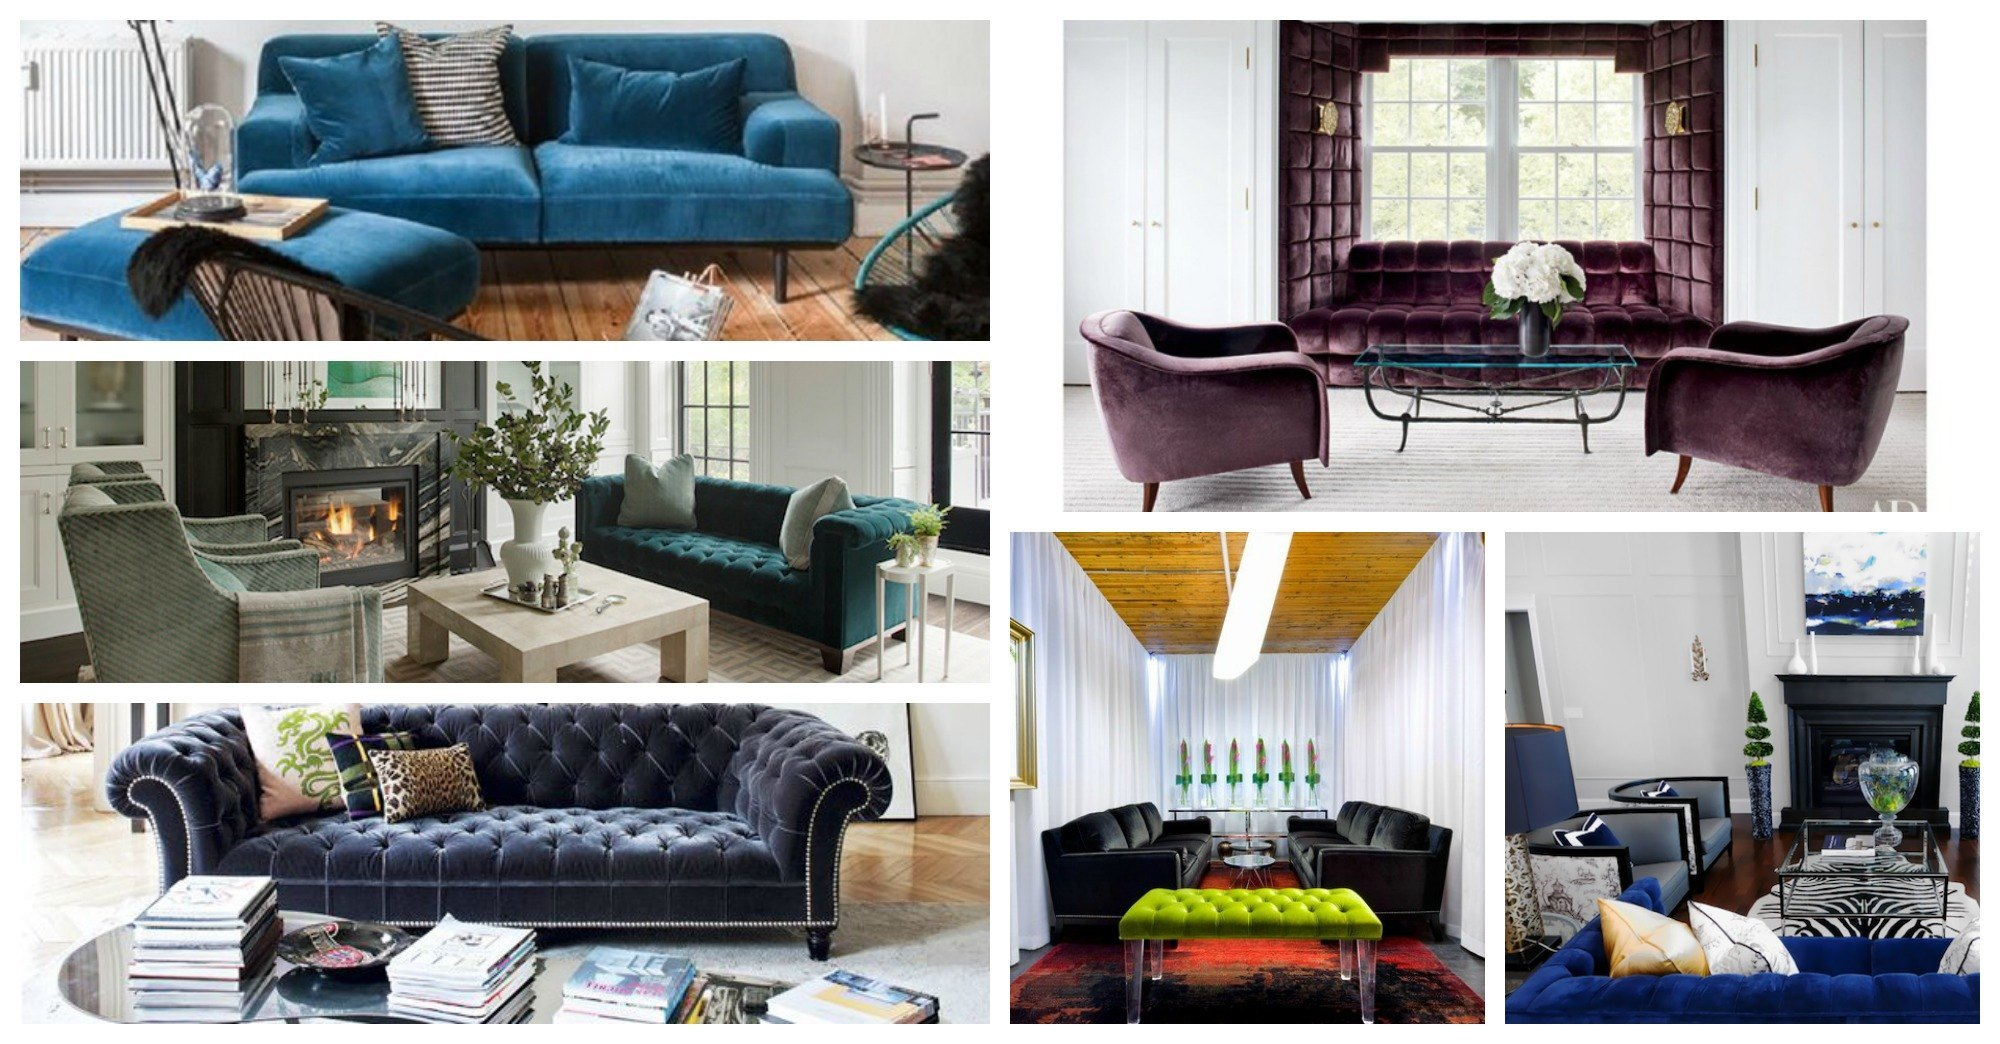 Breathtaking Velvet Interiors That Will Blow Your Mind